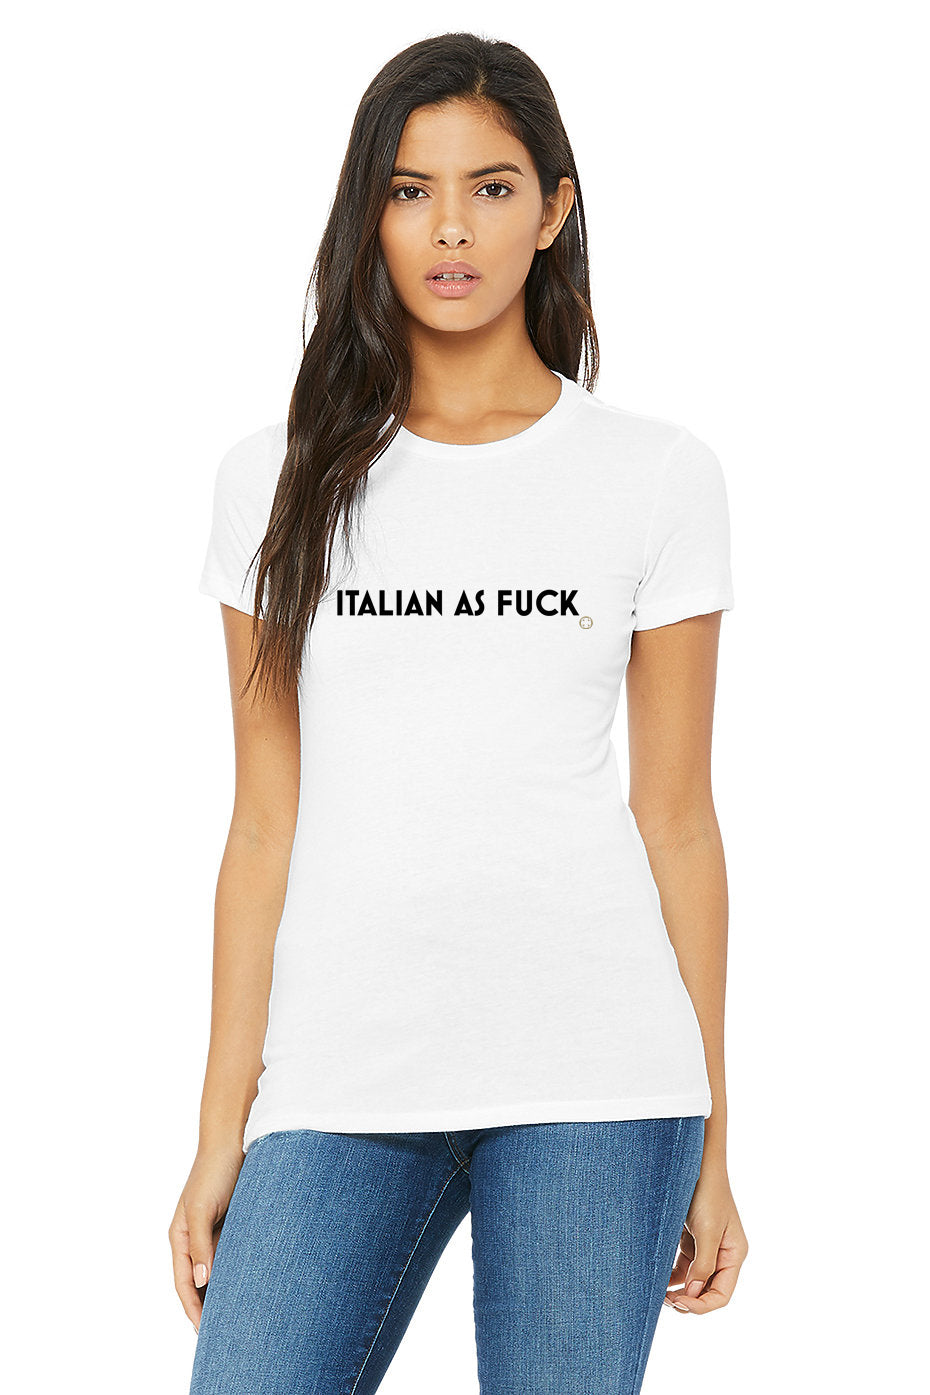 """Italian as Fuck T-Shirt"" - Oriana Lamarca LLC"